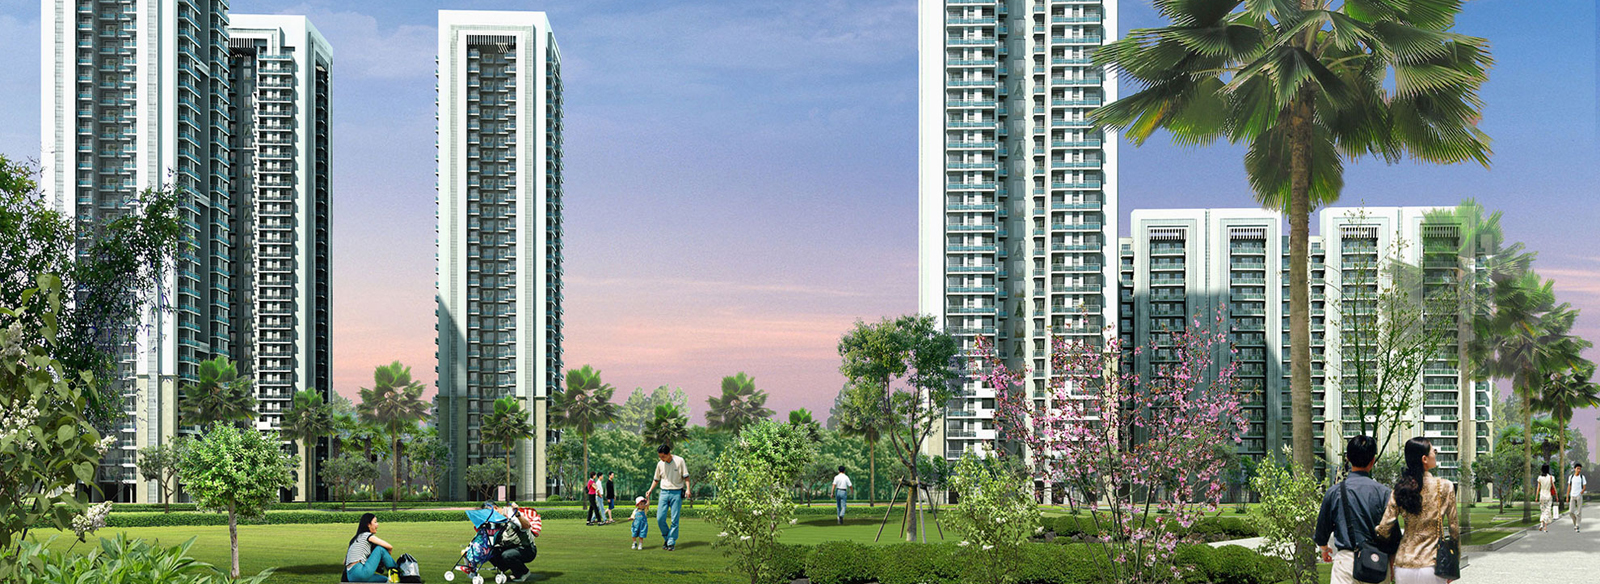 DLF Skycourt Sector 86, Gurgaon